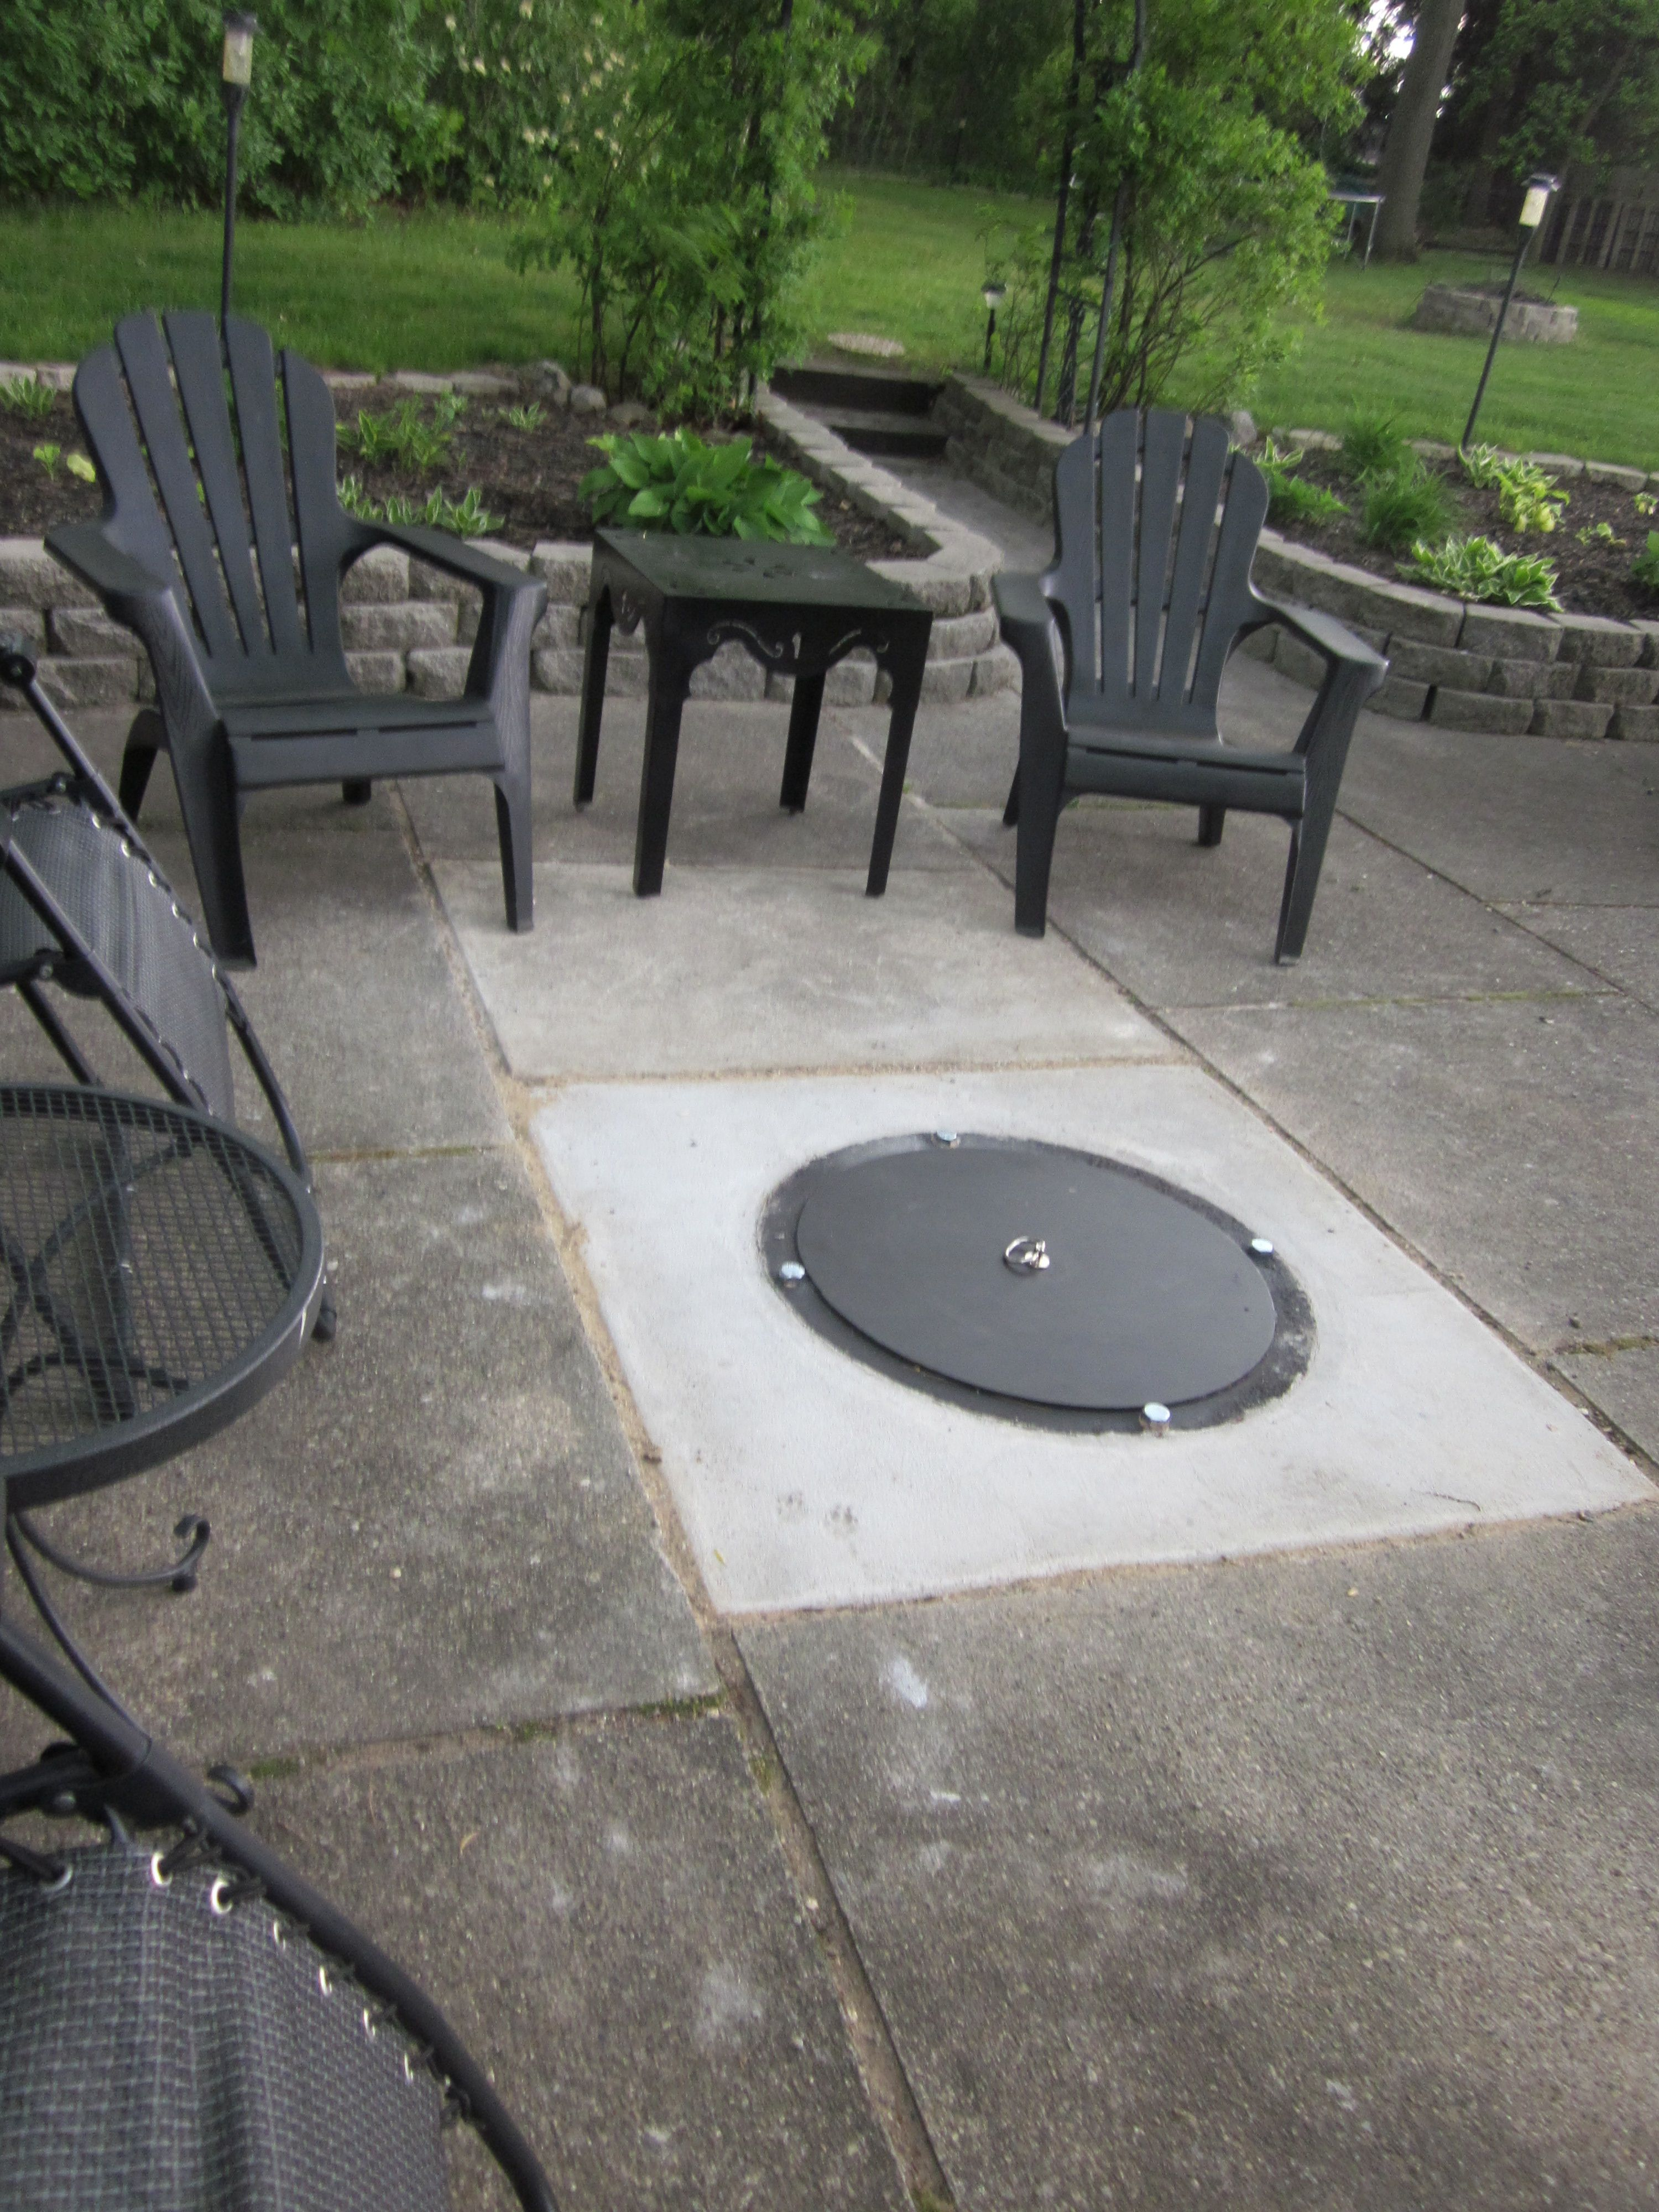 Idea For Fire Pit In The Driveway Parking Area Fire Pit Patio Sunken Fire Pits Cool Fire Pits